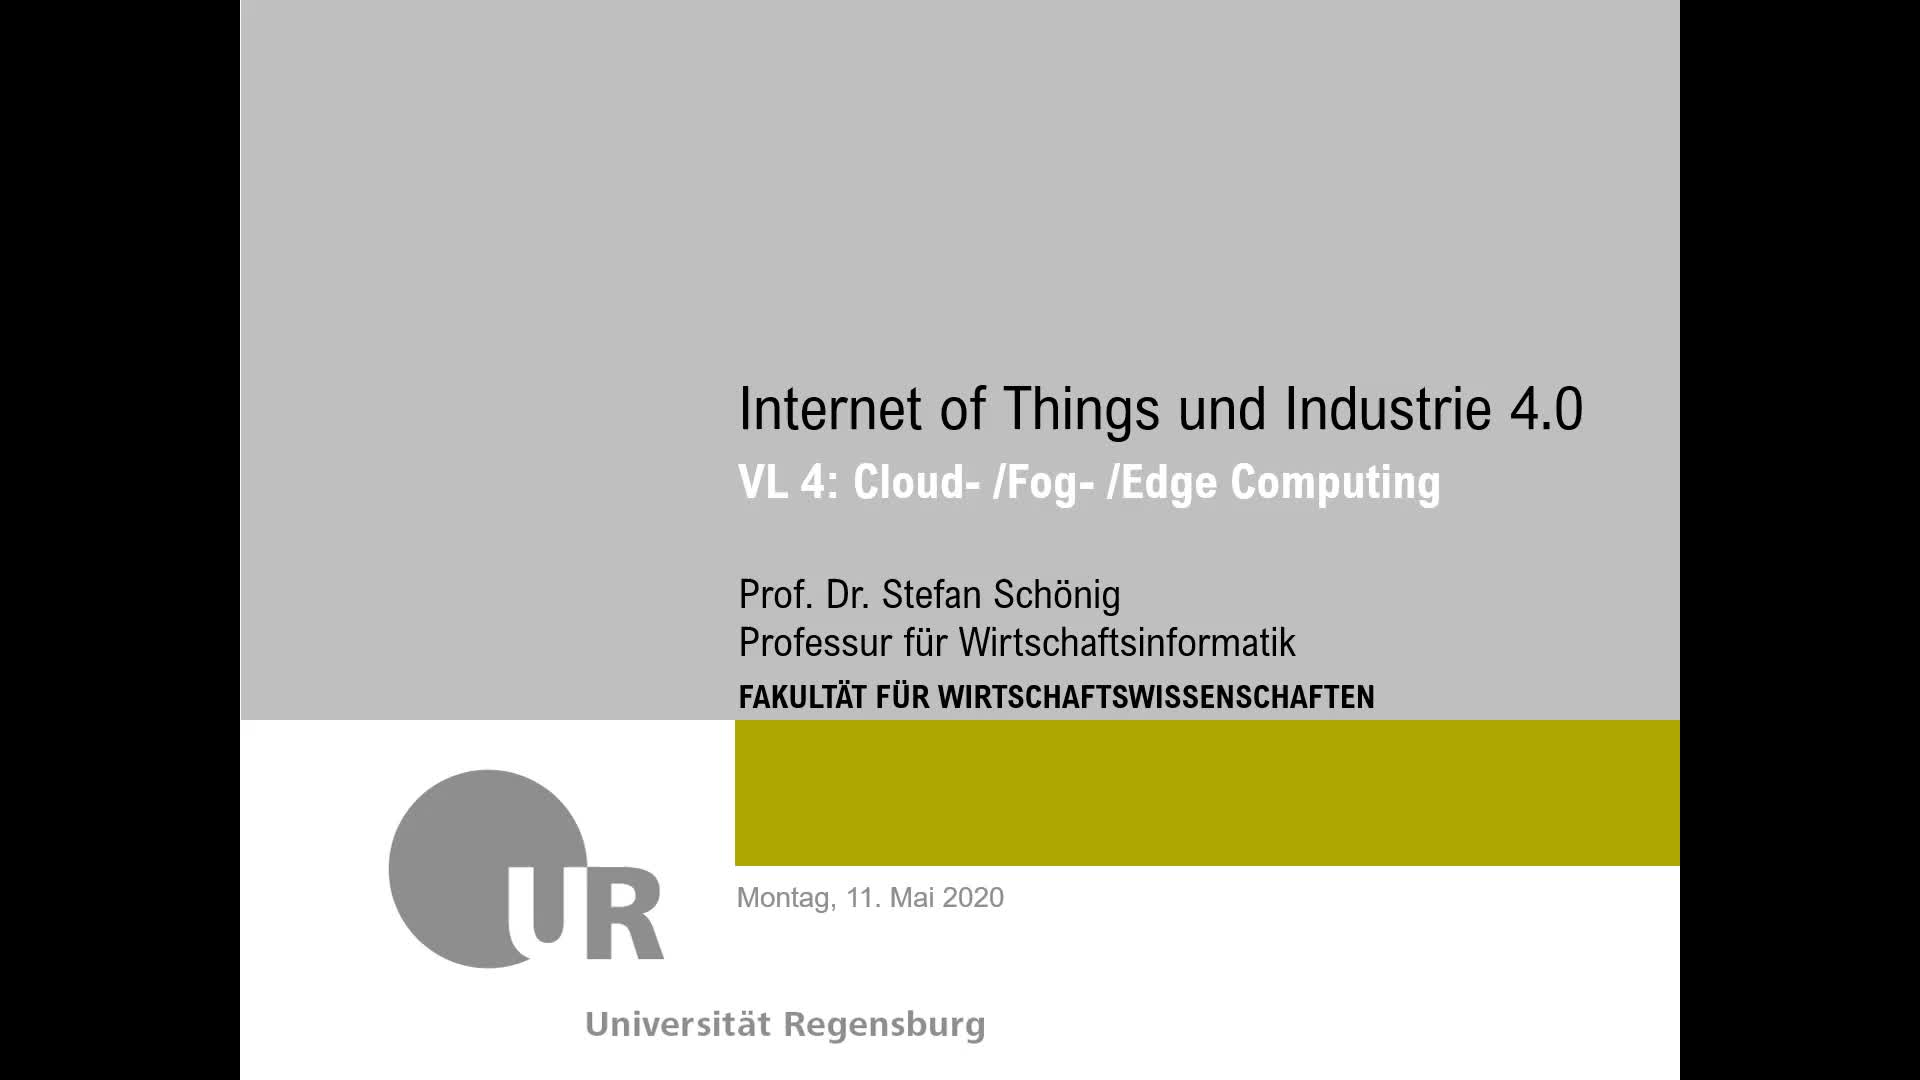 SS 2020 - Internet of Things und Industrie 4.0 - Kapitel 4 (Infrastrukturen - Edge und Fog Computing)